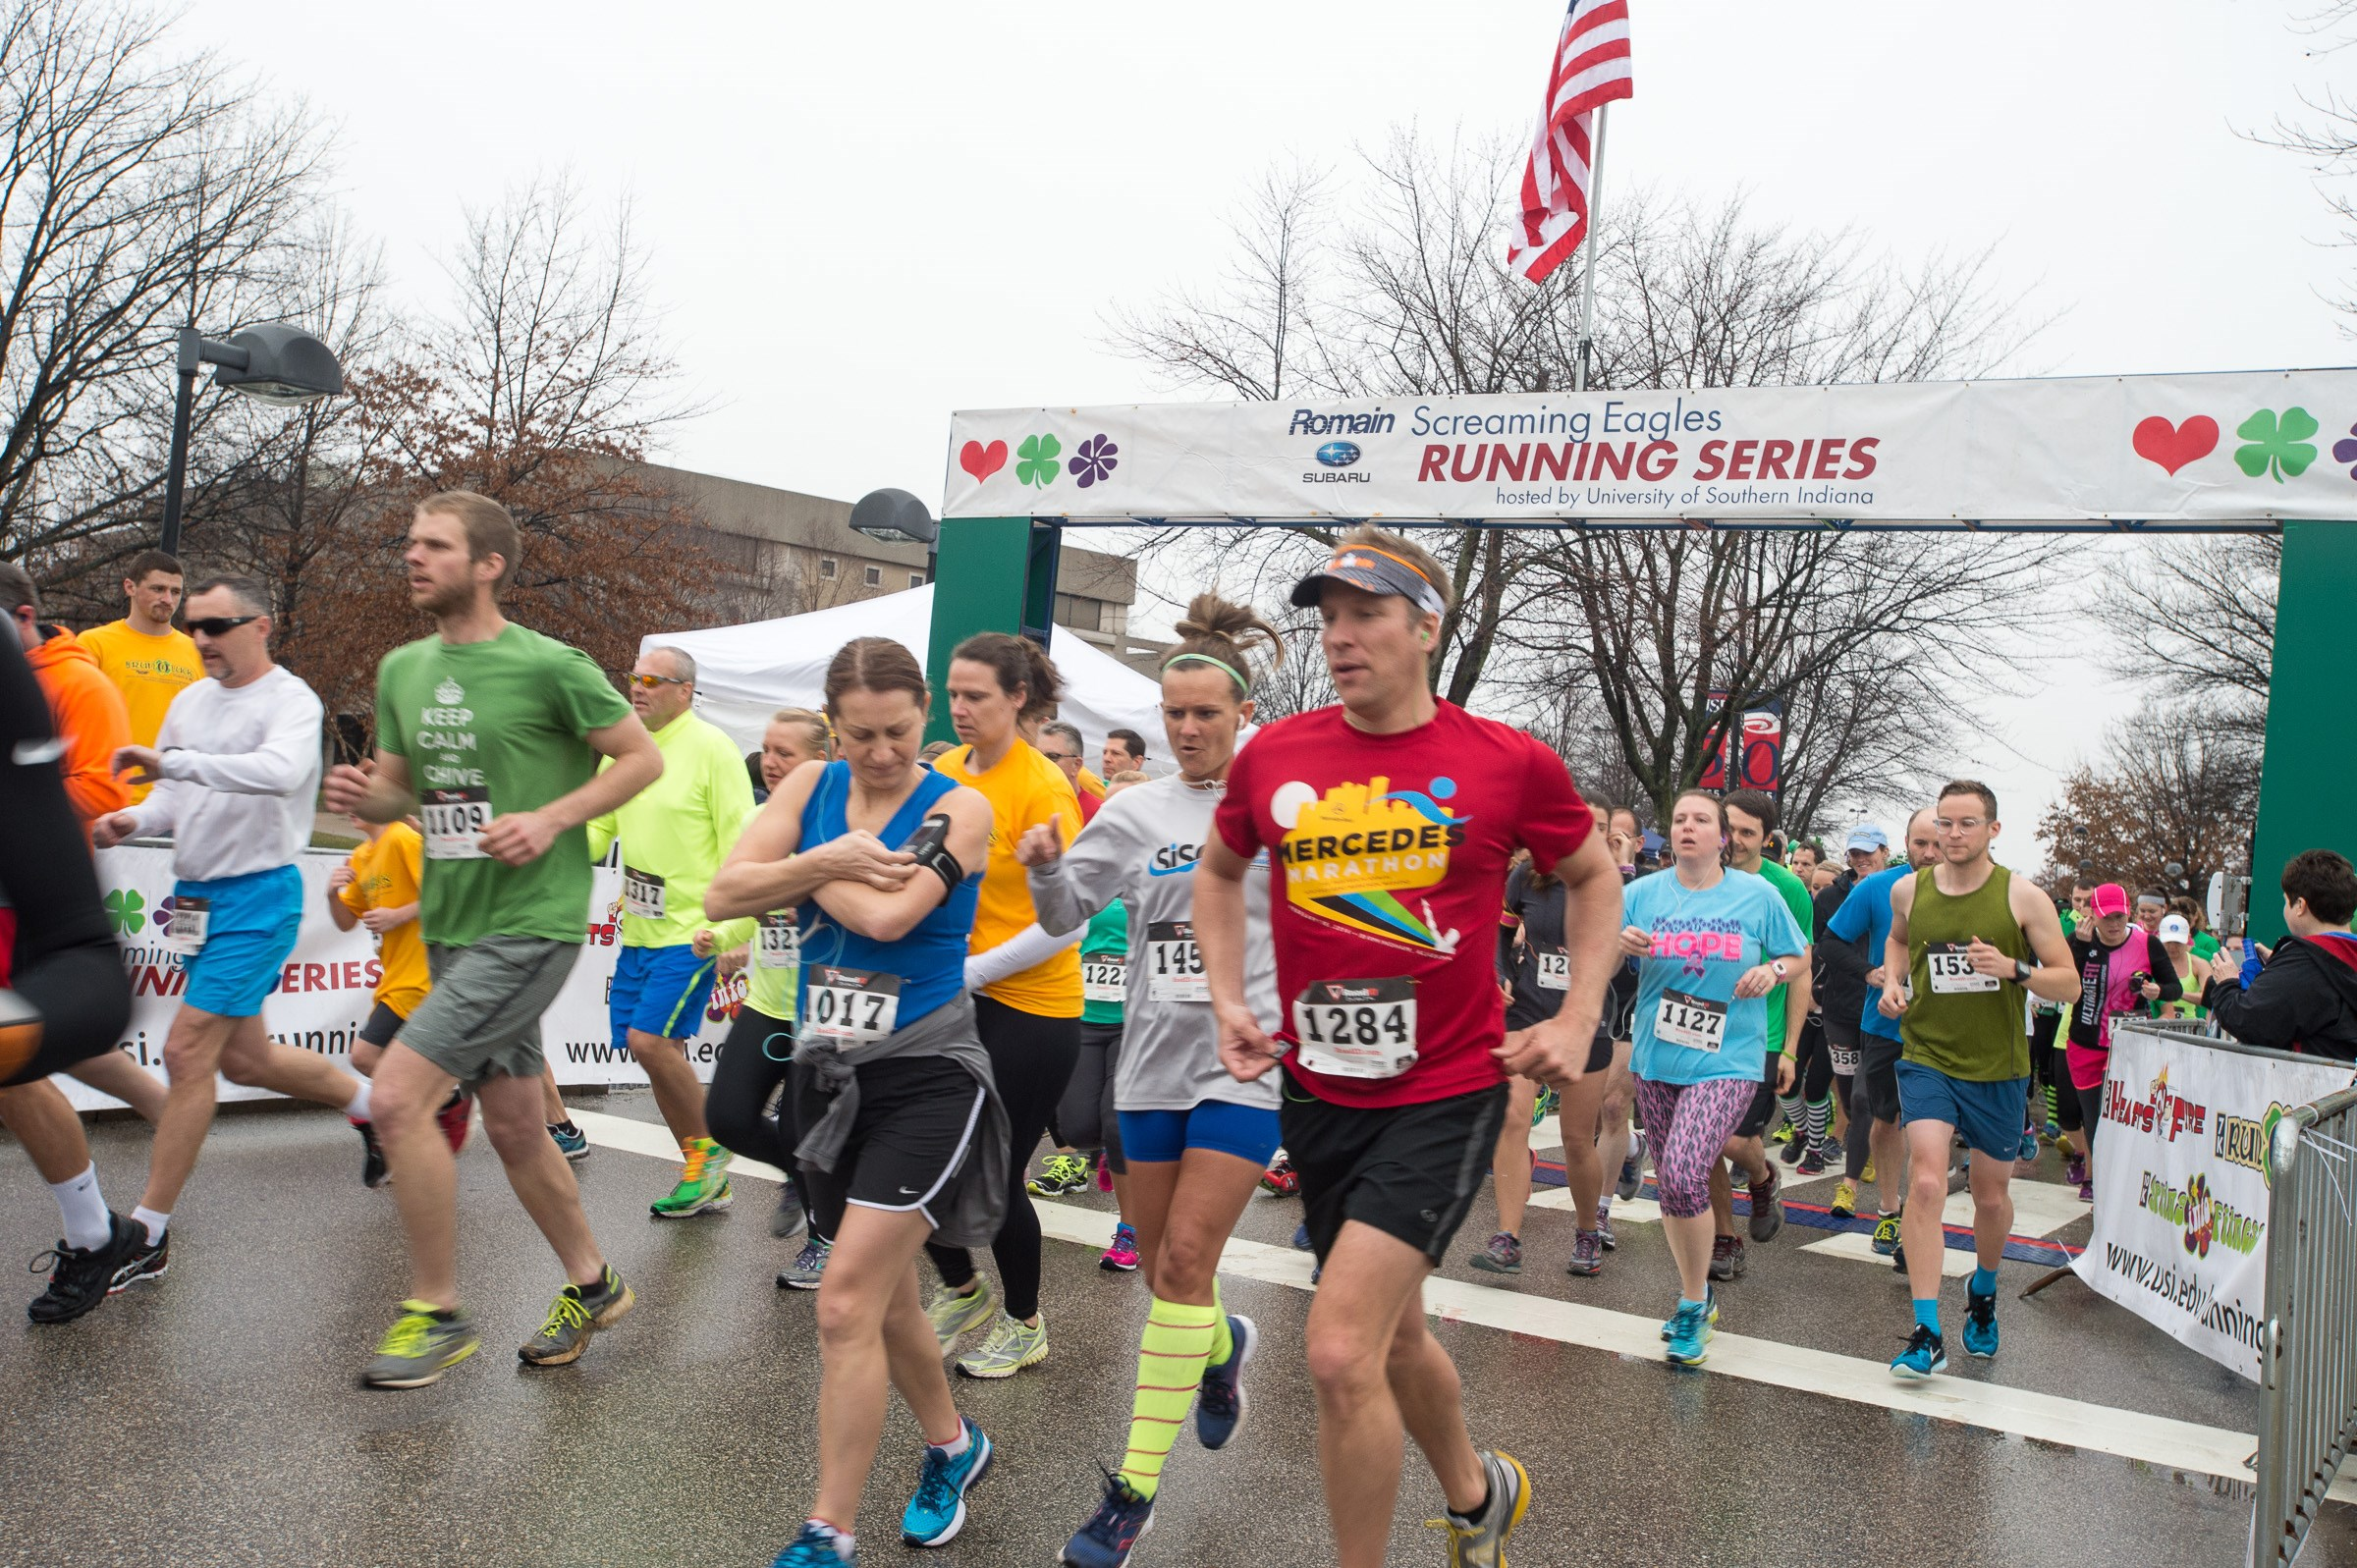 Registration open for Run into Madness 7k